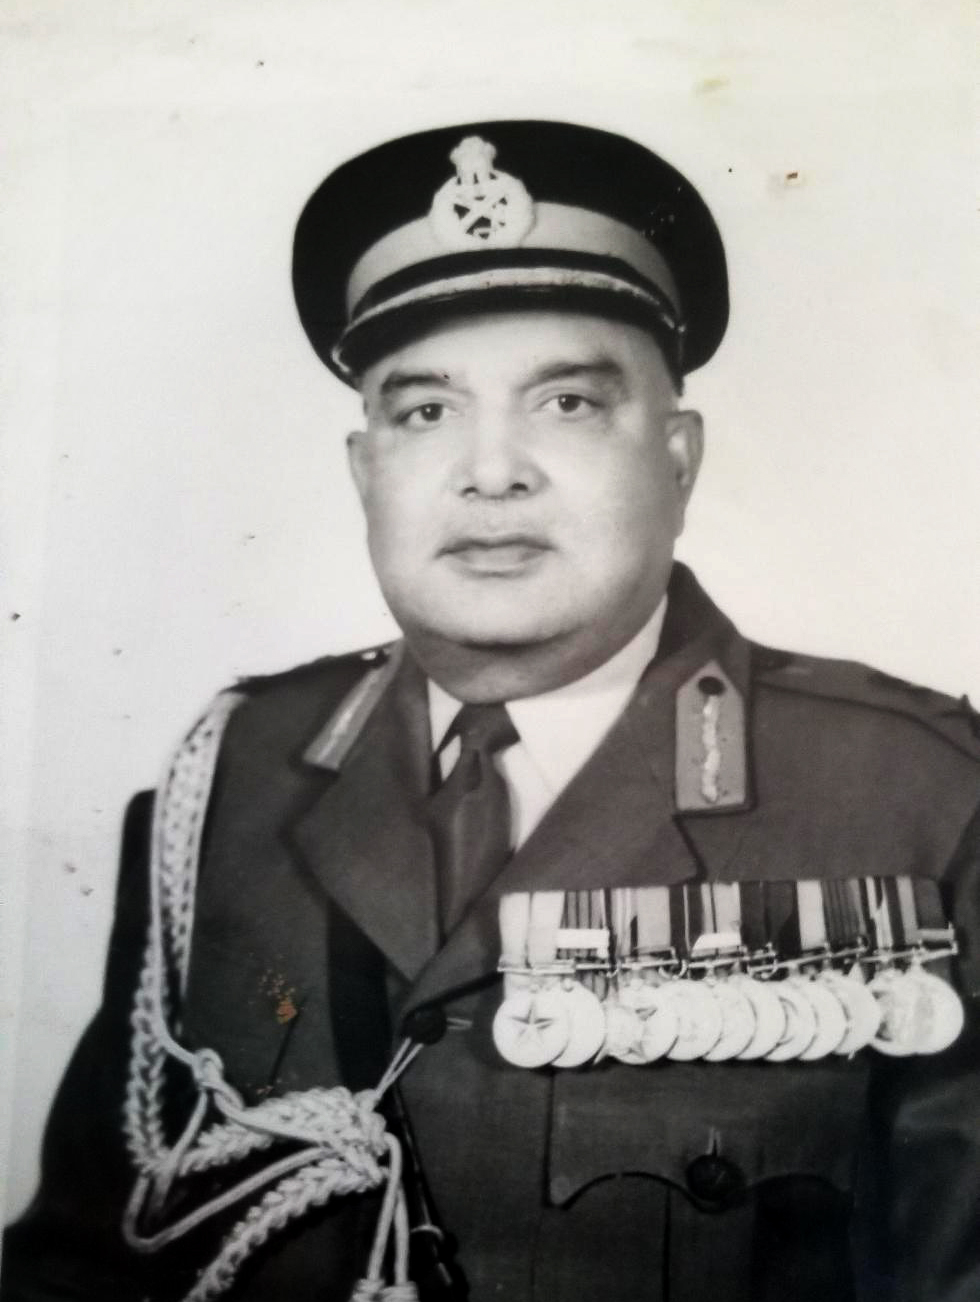 Manisha's father in military garb